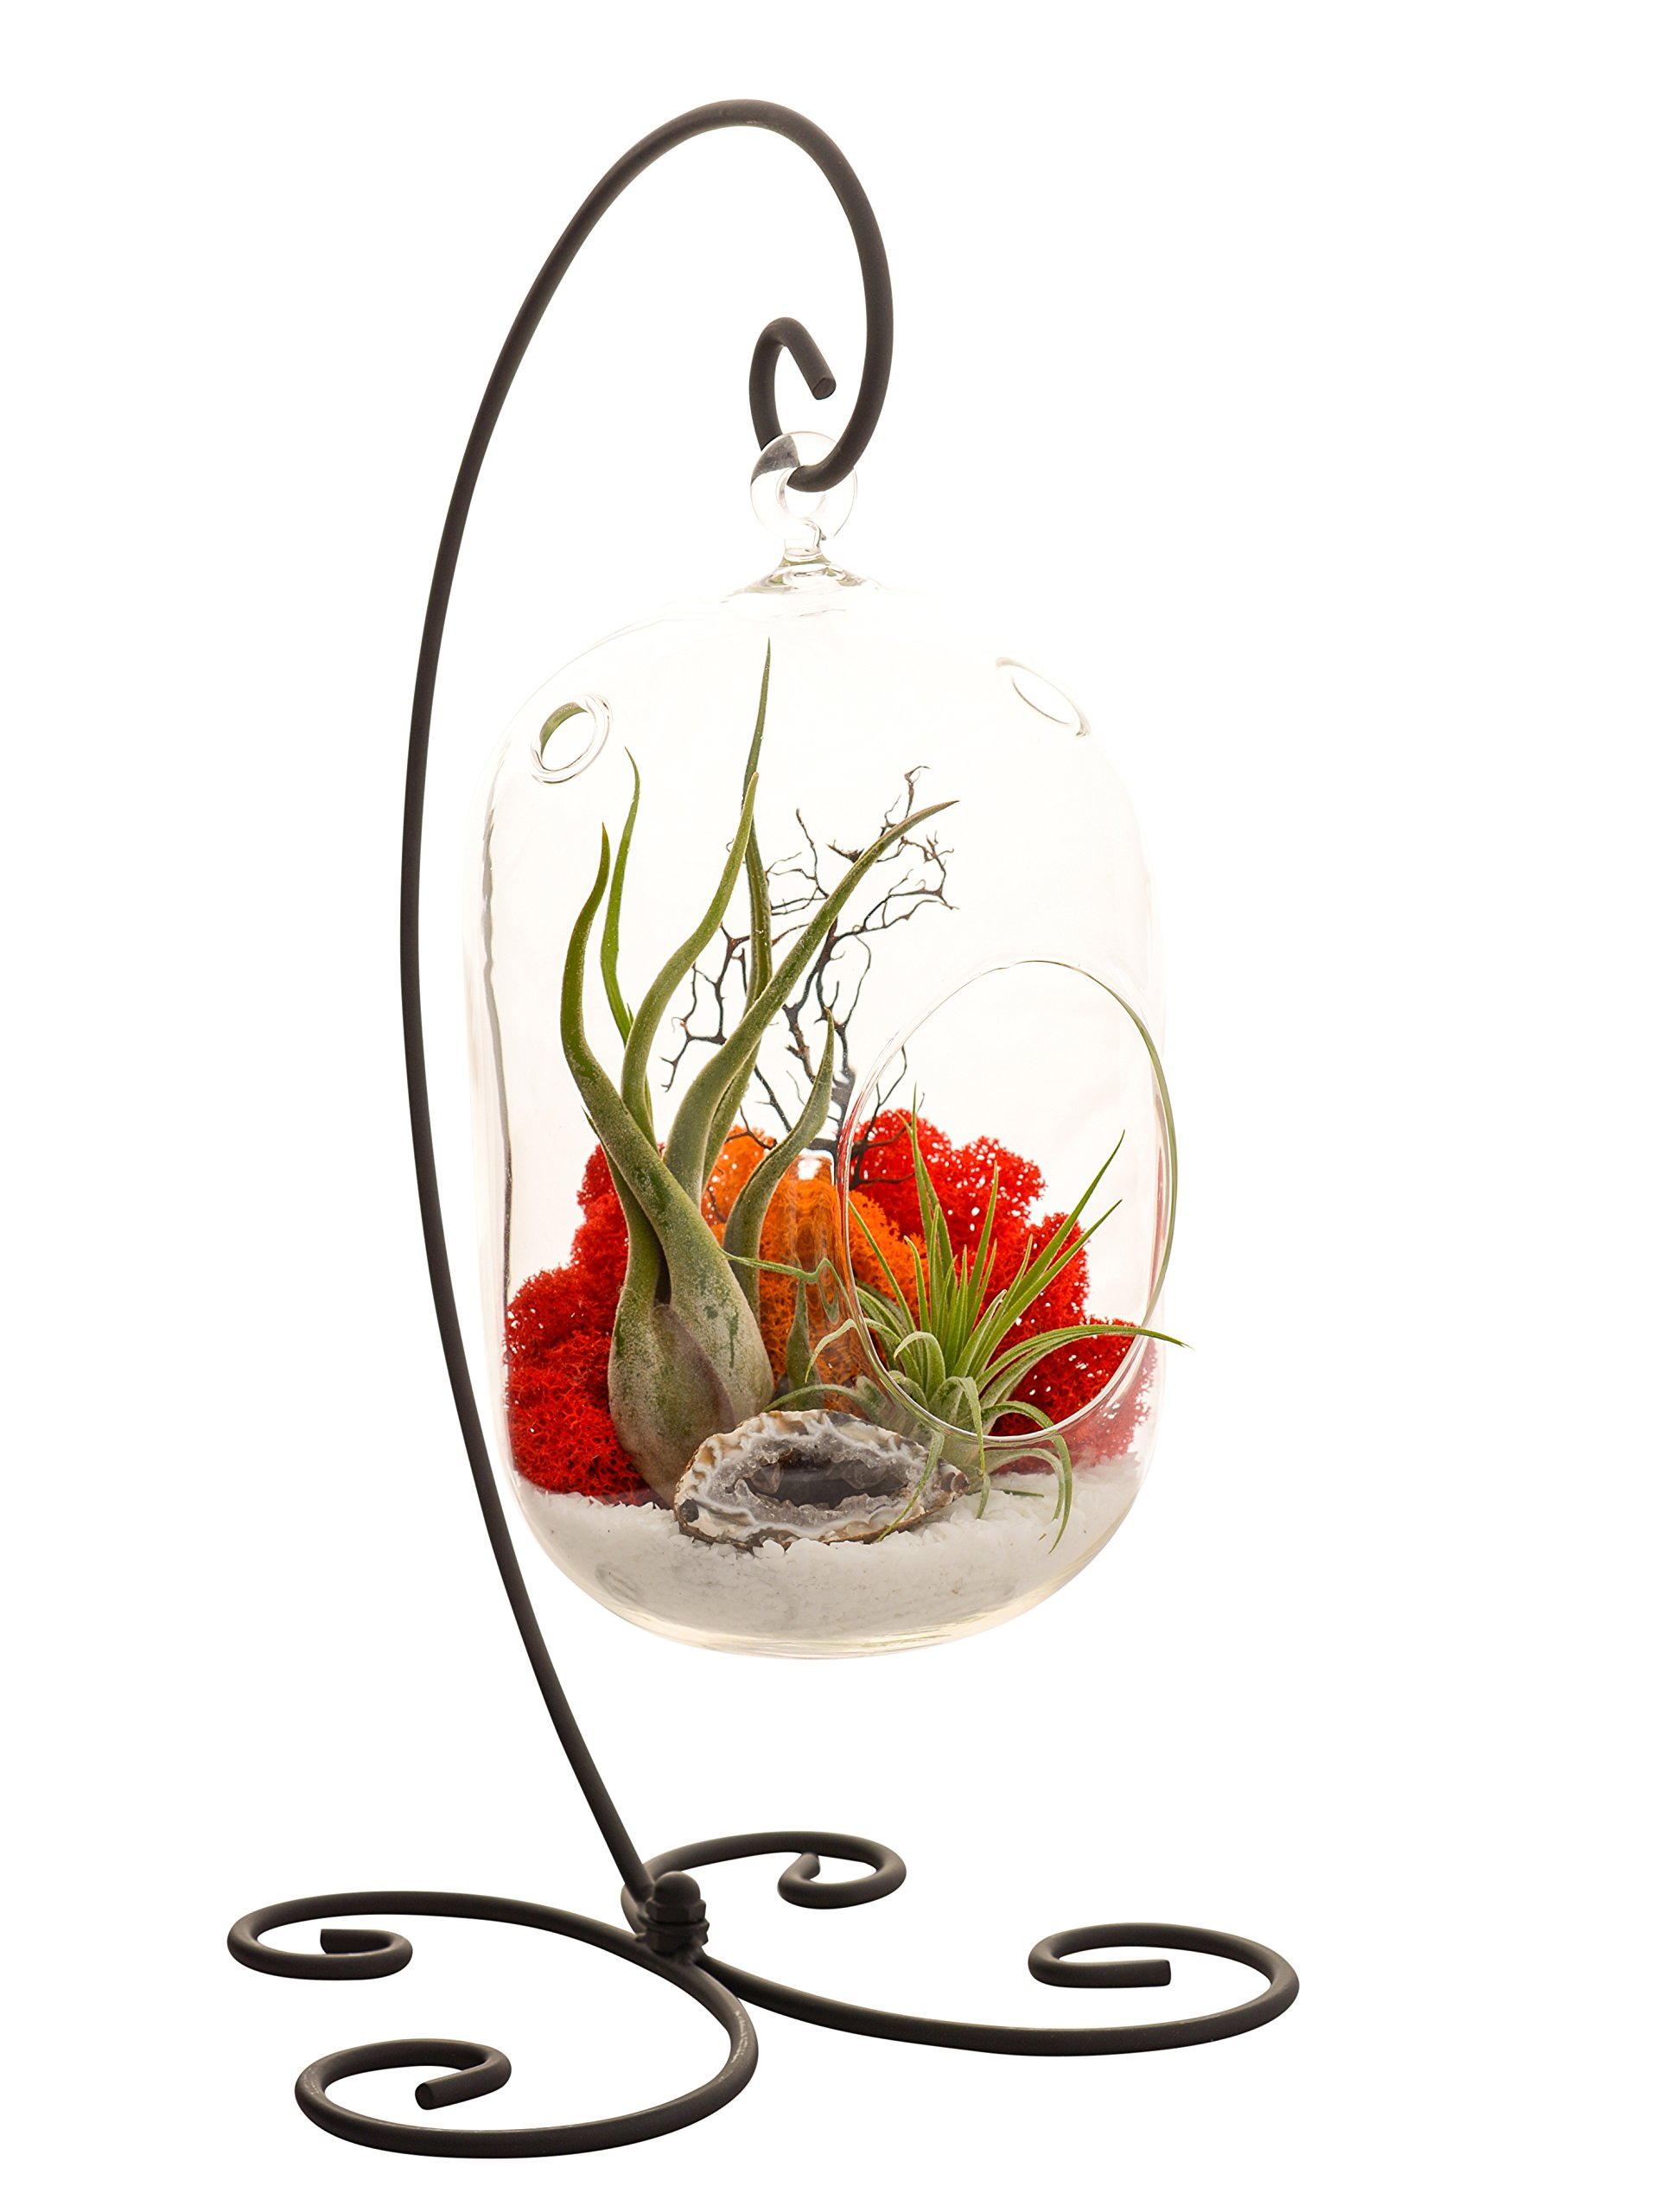 Bliss Gardens Air Plant Terrarium Kit With 8'' Oval Glass/Geode Crystal/Sunburst On Ice/Large Black Metal Stand Included by Bliss Gardens